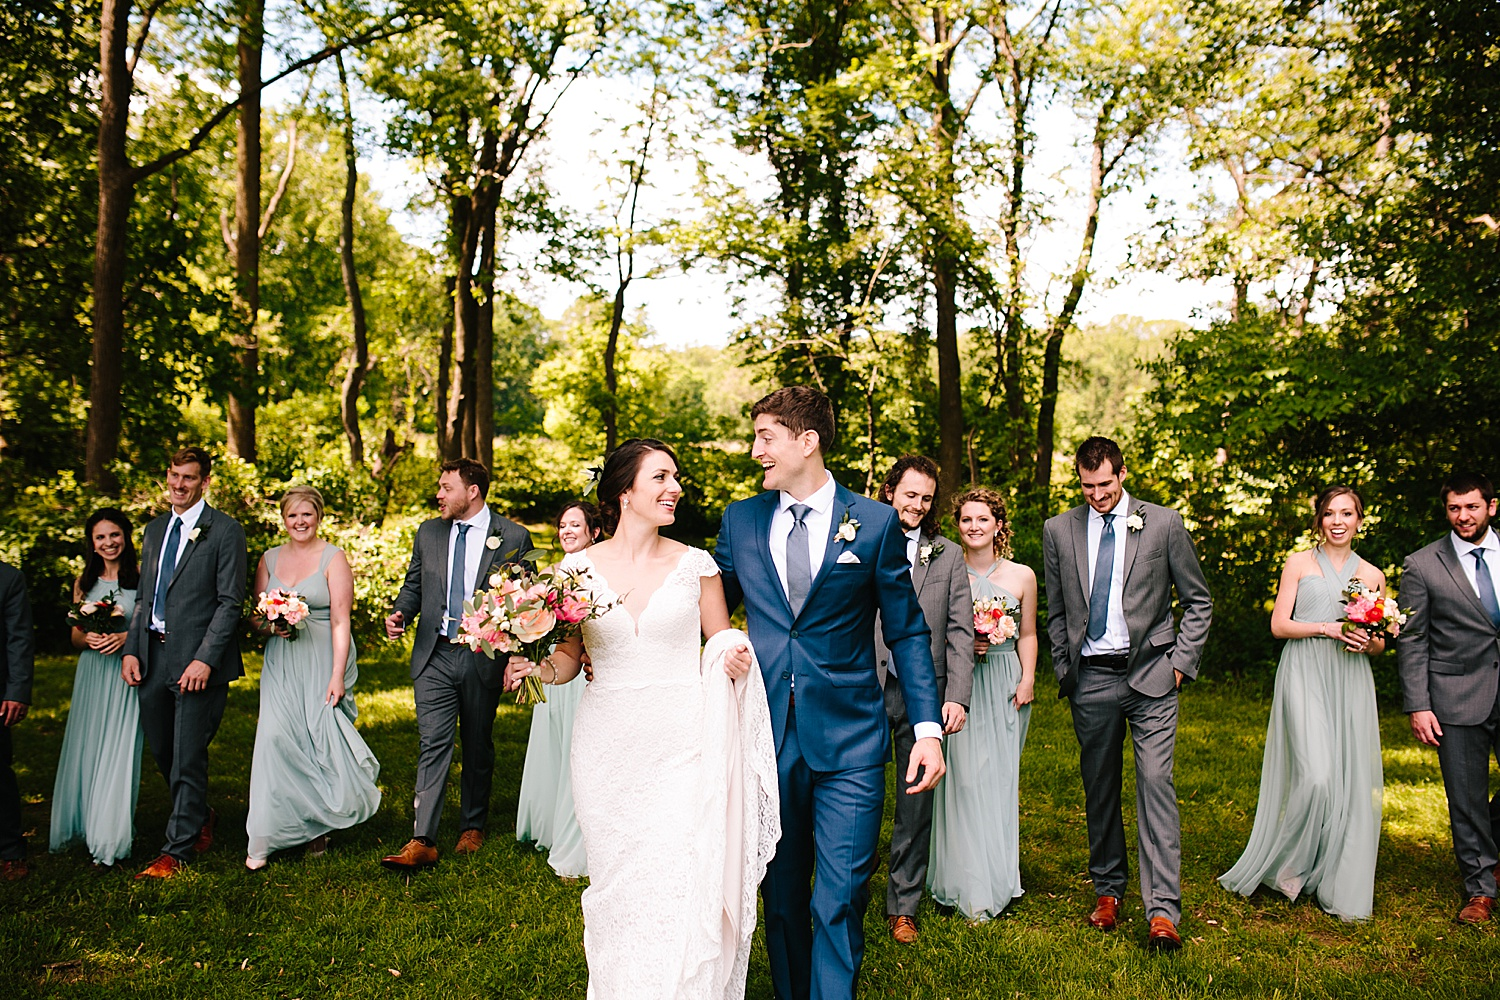 emilyaustin_rosebank_winery_newhope_farm_wedding_image048.jpg